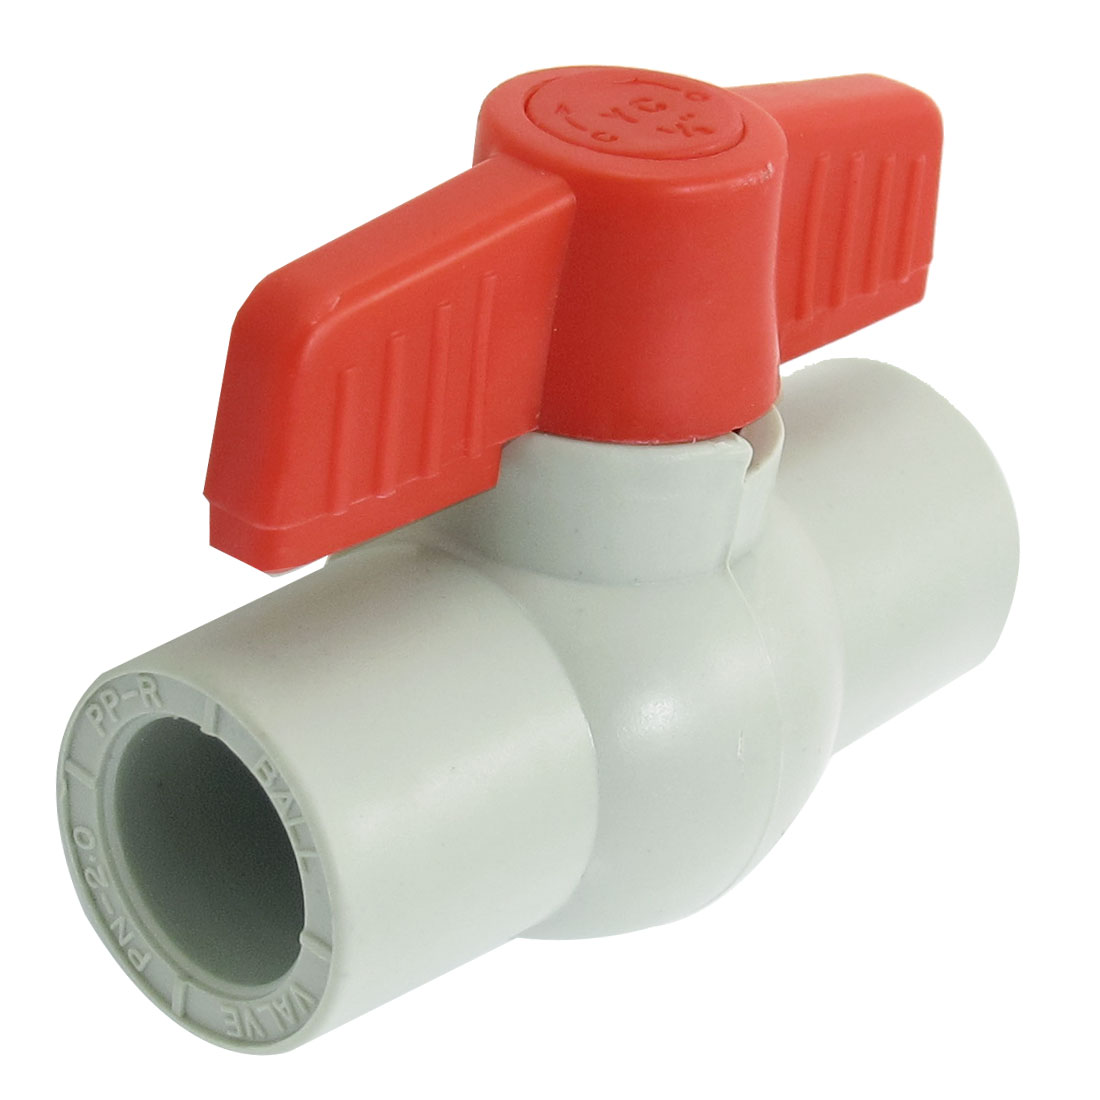 Red Handle 19mm x 19mm Slip Ends Full Port PPR Ball Valve